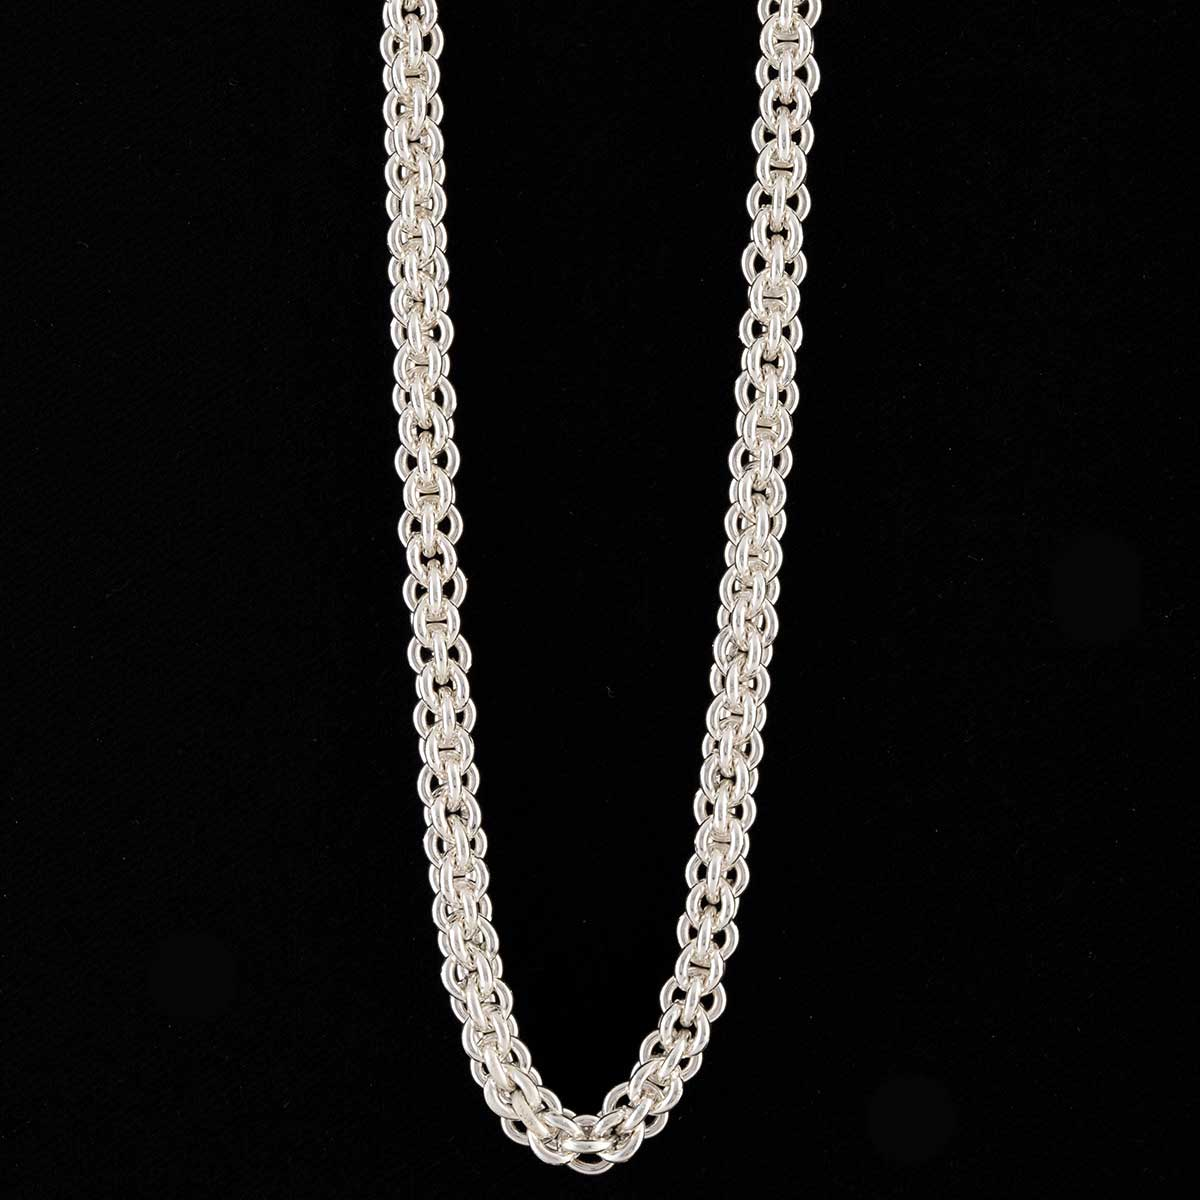 Silver Chain Necklace with Magnetic Clasp